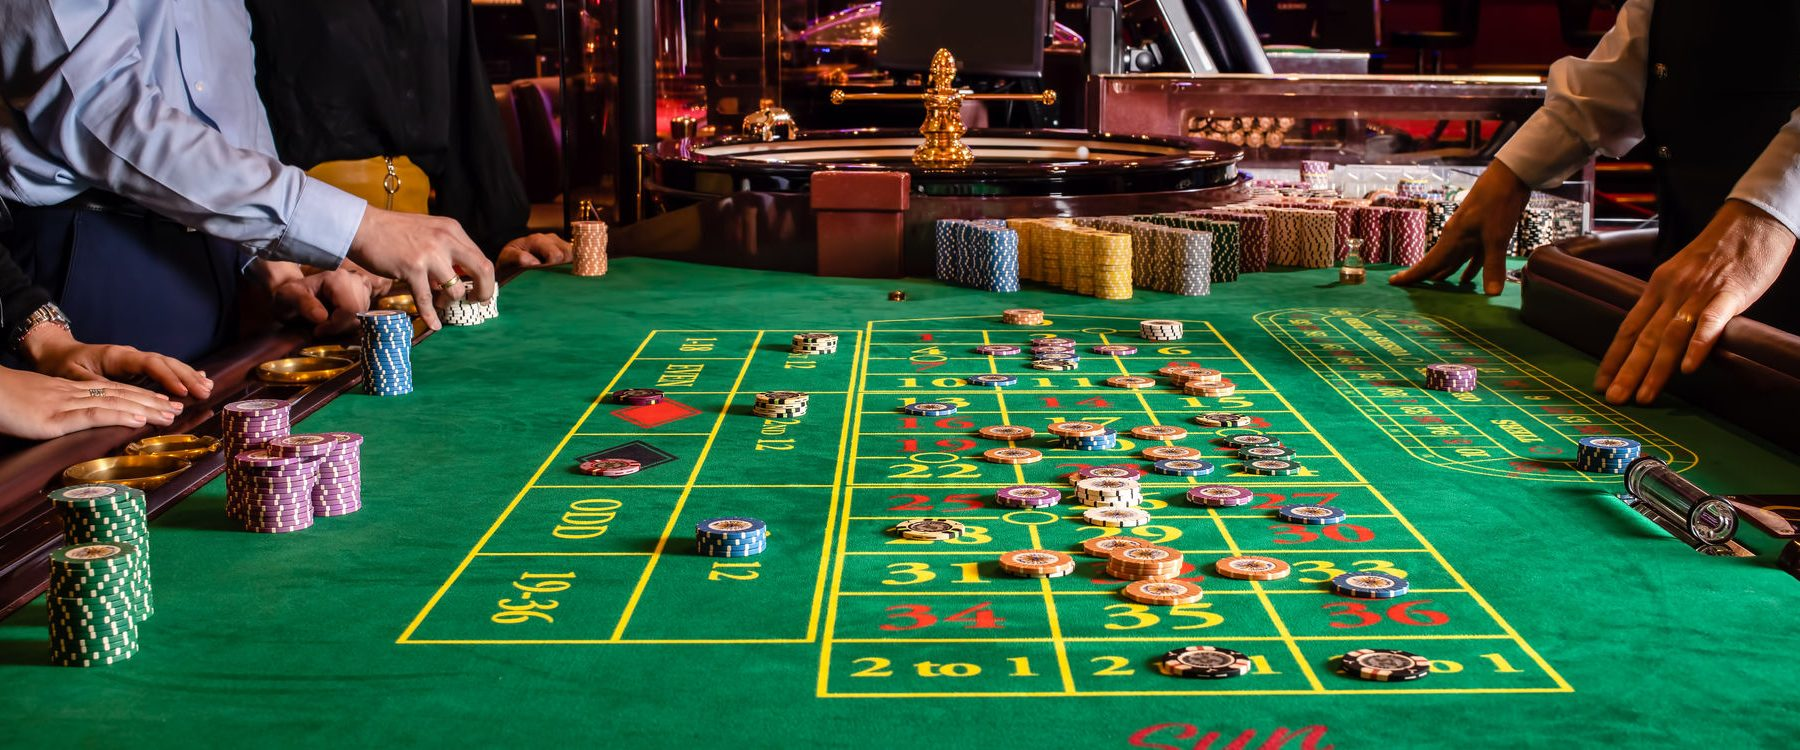 Fulfil the expectations about the profitable roulette gambling activities